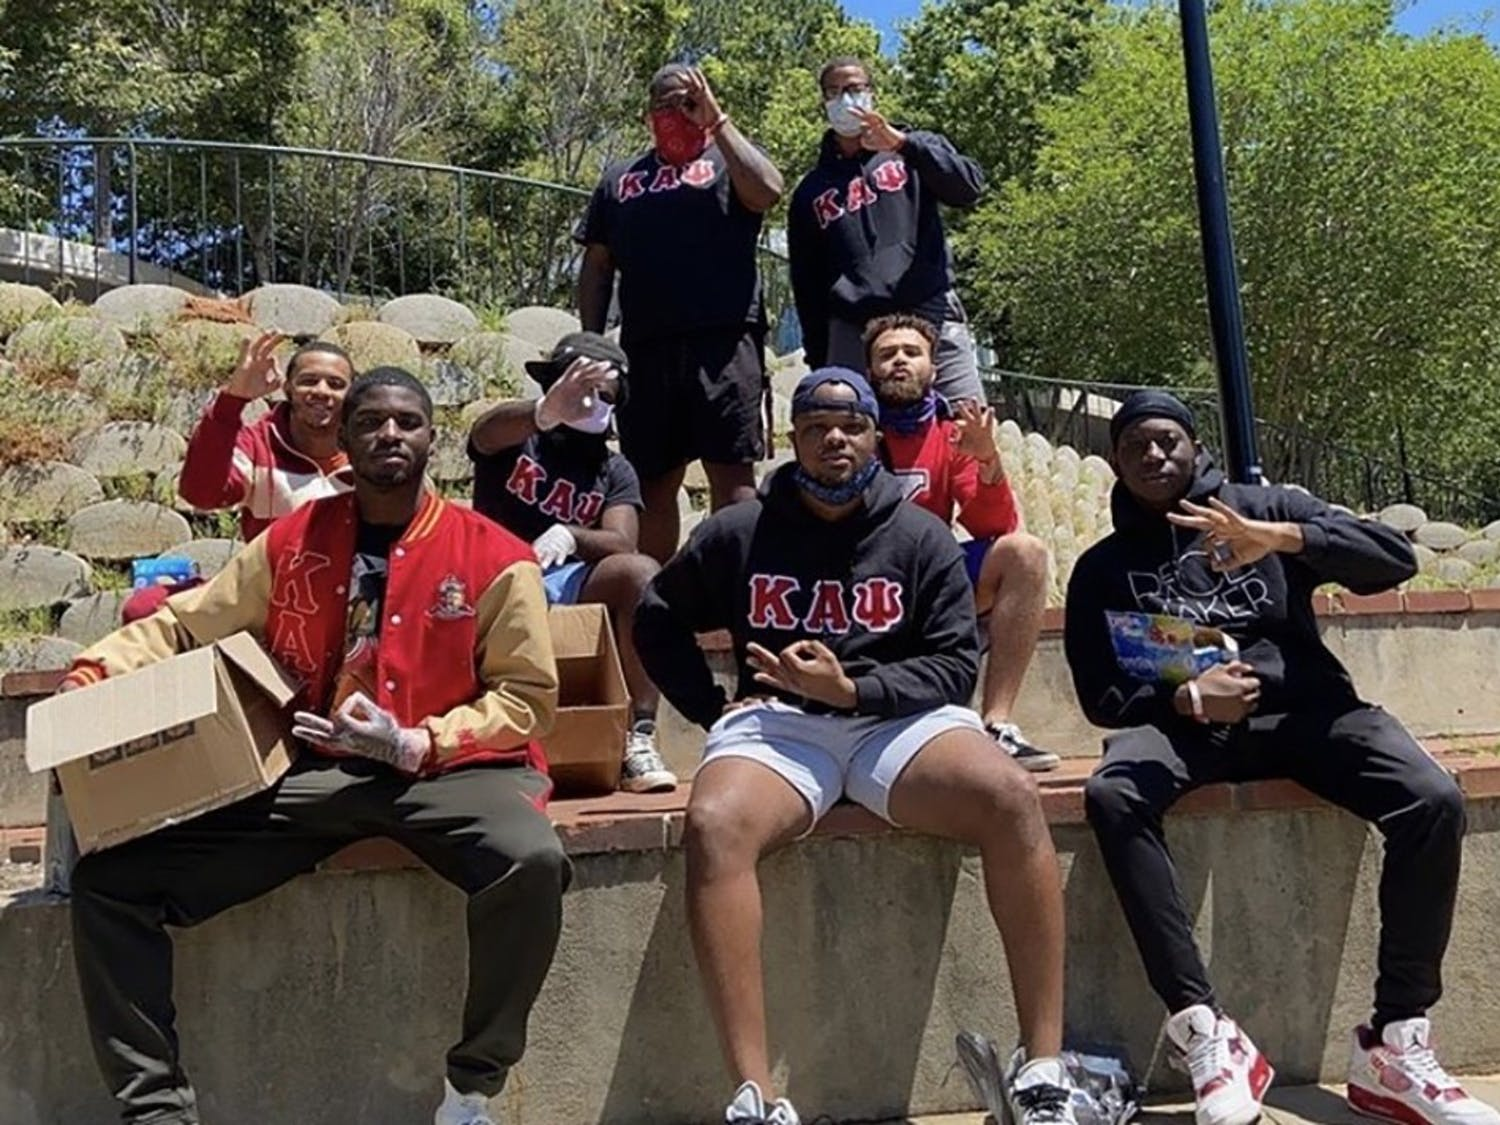 Brothers of the Zeta Epsilon chapter of Kappa Alpha Psi help feed the homeless at Finley Park.